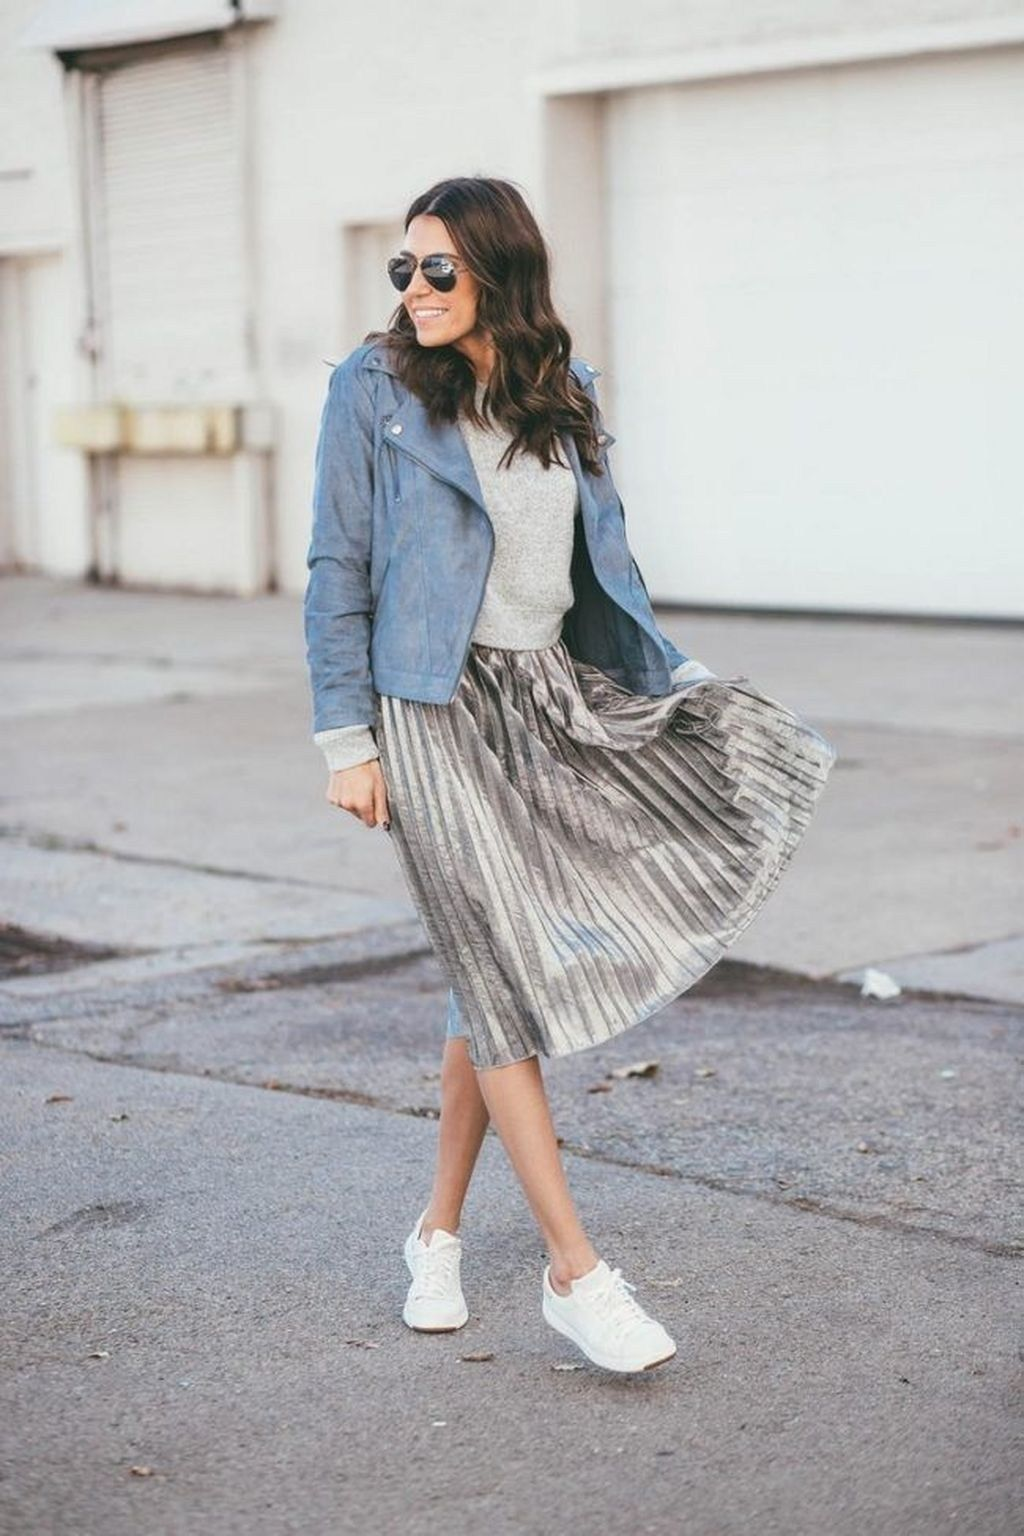 36 Attractive Sneakers Outfit Ideas For Fall And Winter